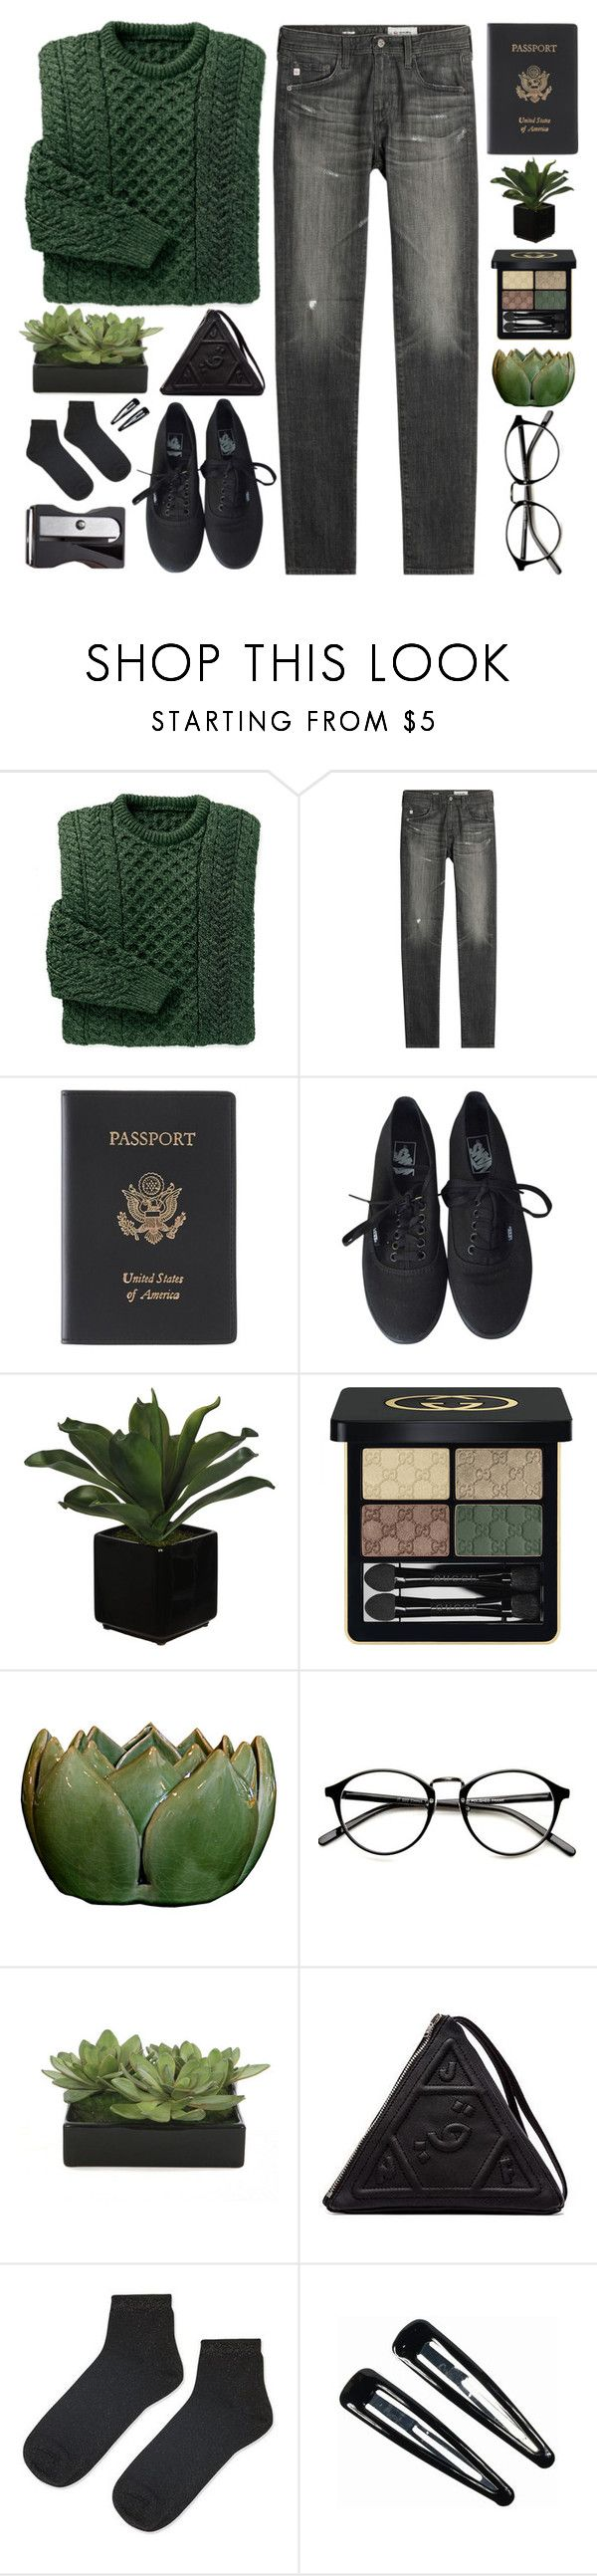 """""""i was young and a menace"""" by megan-vanwinkle on Polyvore featuring AG Adriano Goldschmied, Royce Leather, Vans, Gucci, Lux-Art Silks, UNIF, Topshop, Clips, Monkey Business and polyvoreeditorial"""